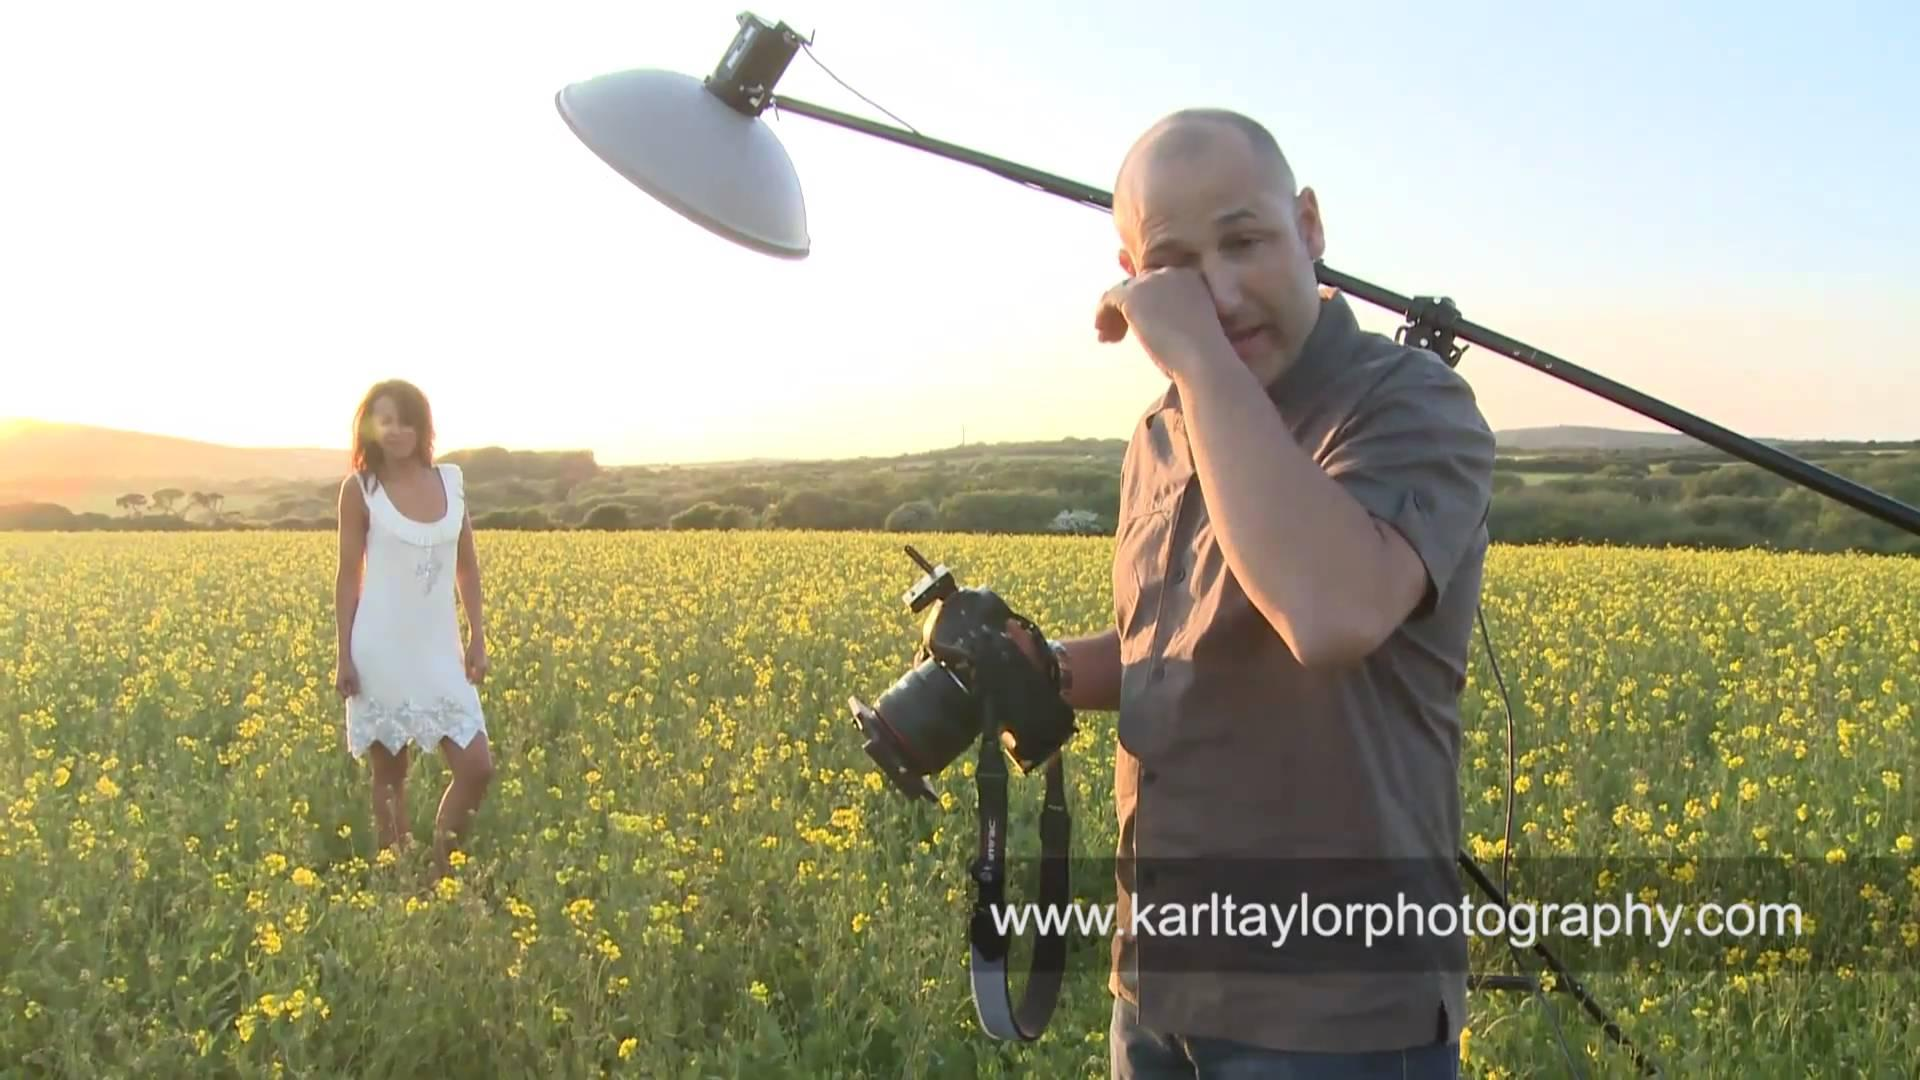 Sexy Fashion Shoot In A Field Of Flowers – Karl Taylor Photography